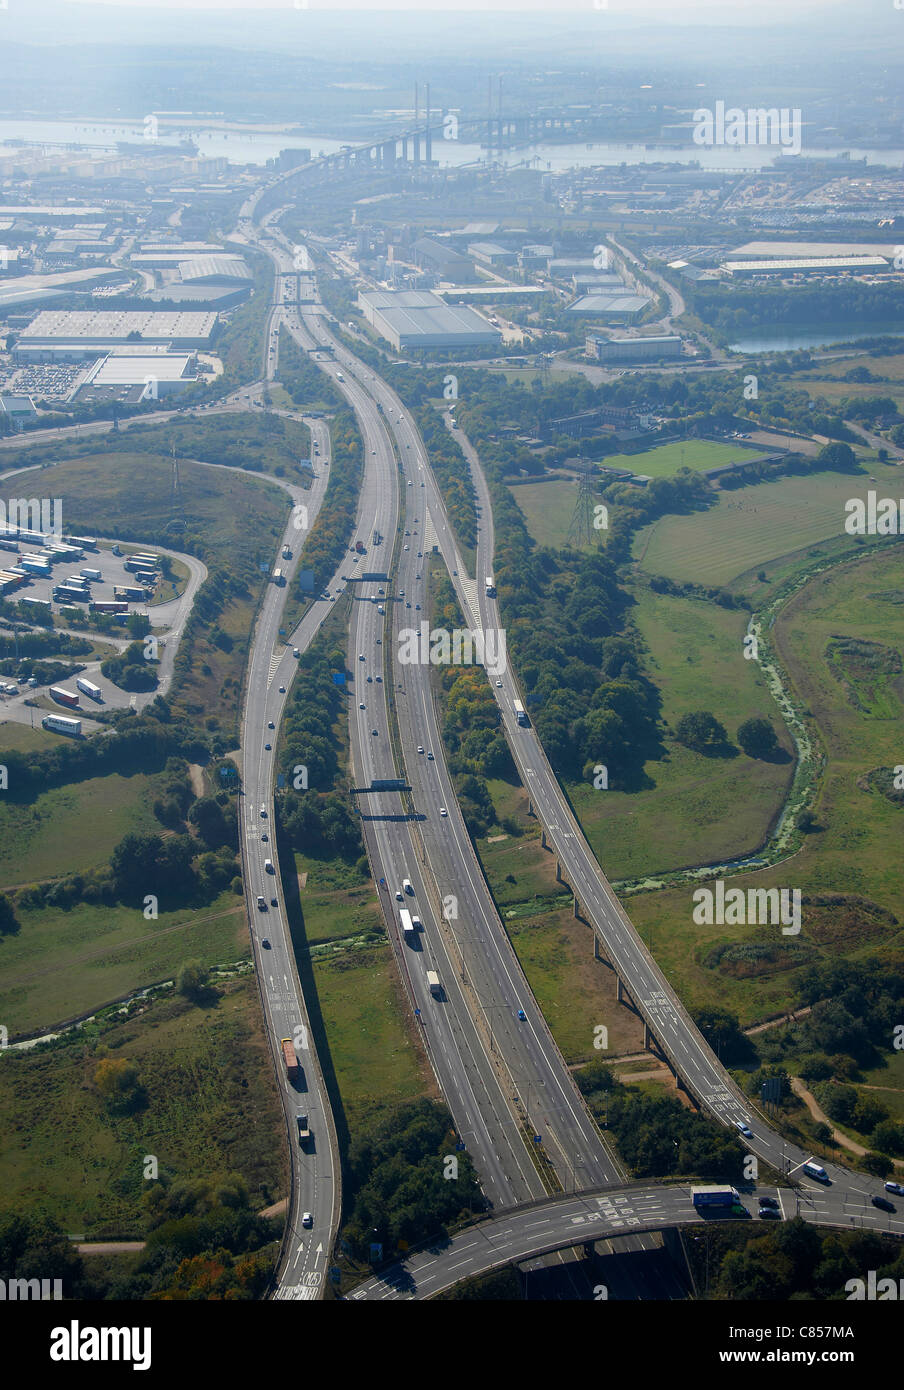 M25/A13 intersection, looking south to the Dartford Crossing, South East England, UK - Stock Image